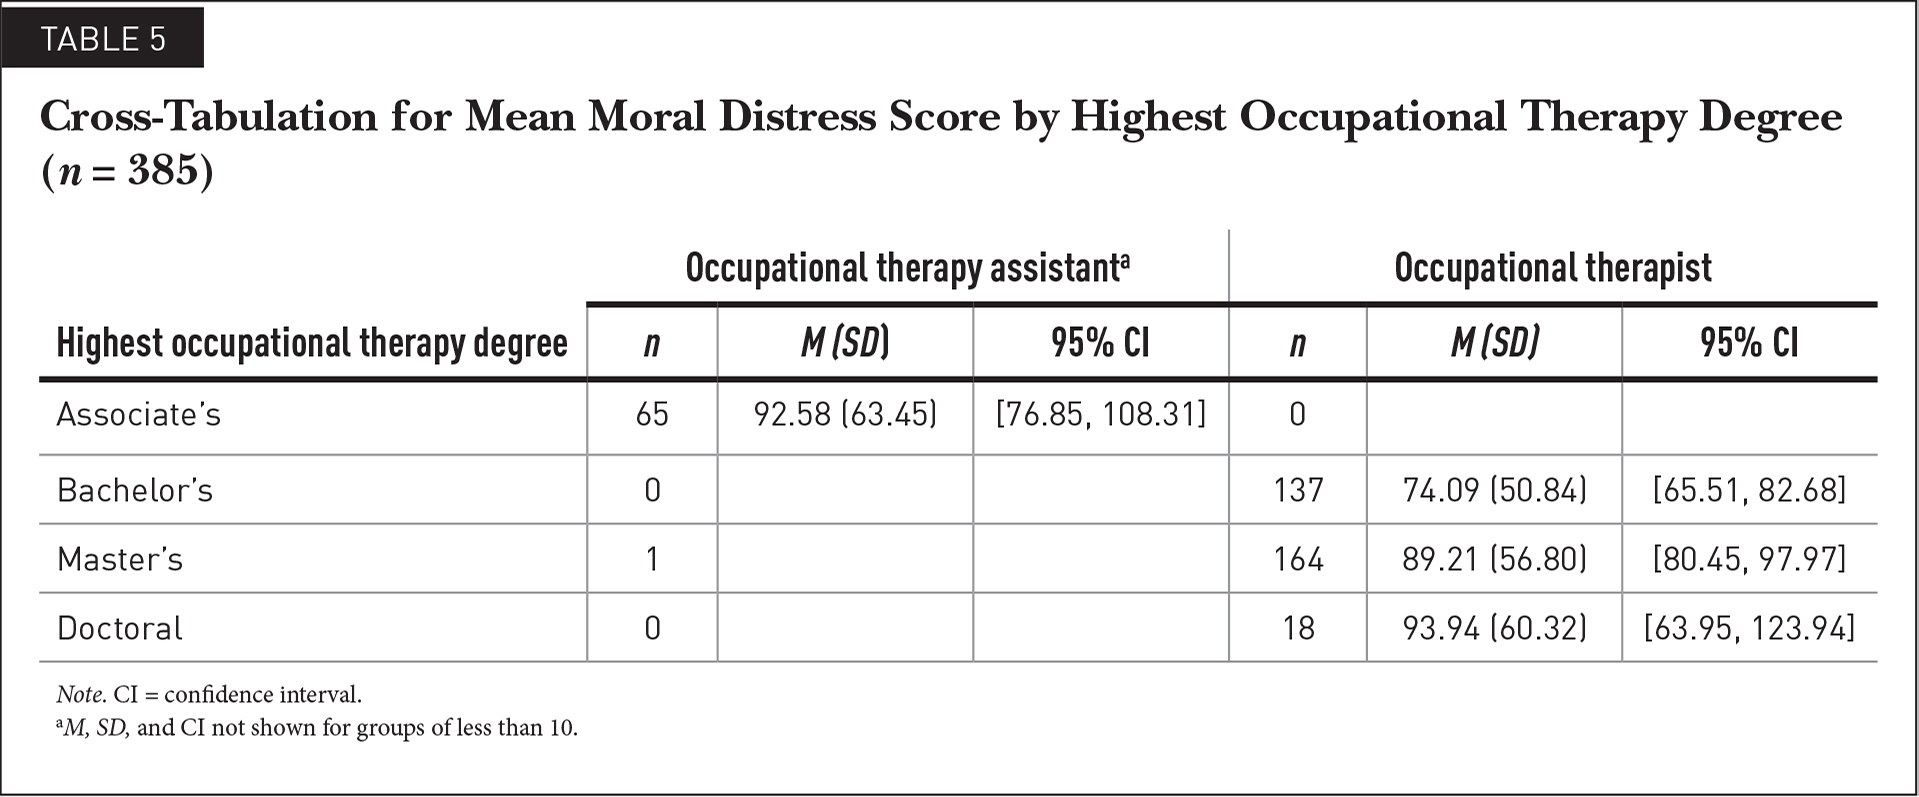 Cross-Tabulation for Mean Moral Distress Score by Highest Occupational Therapy Degree (n = 385)